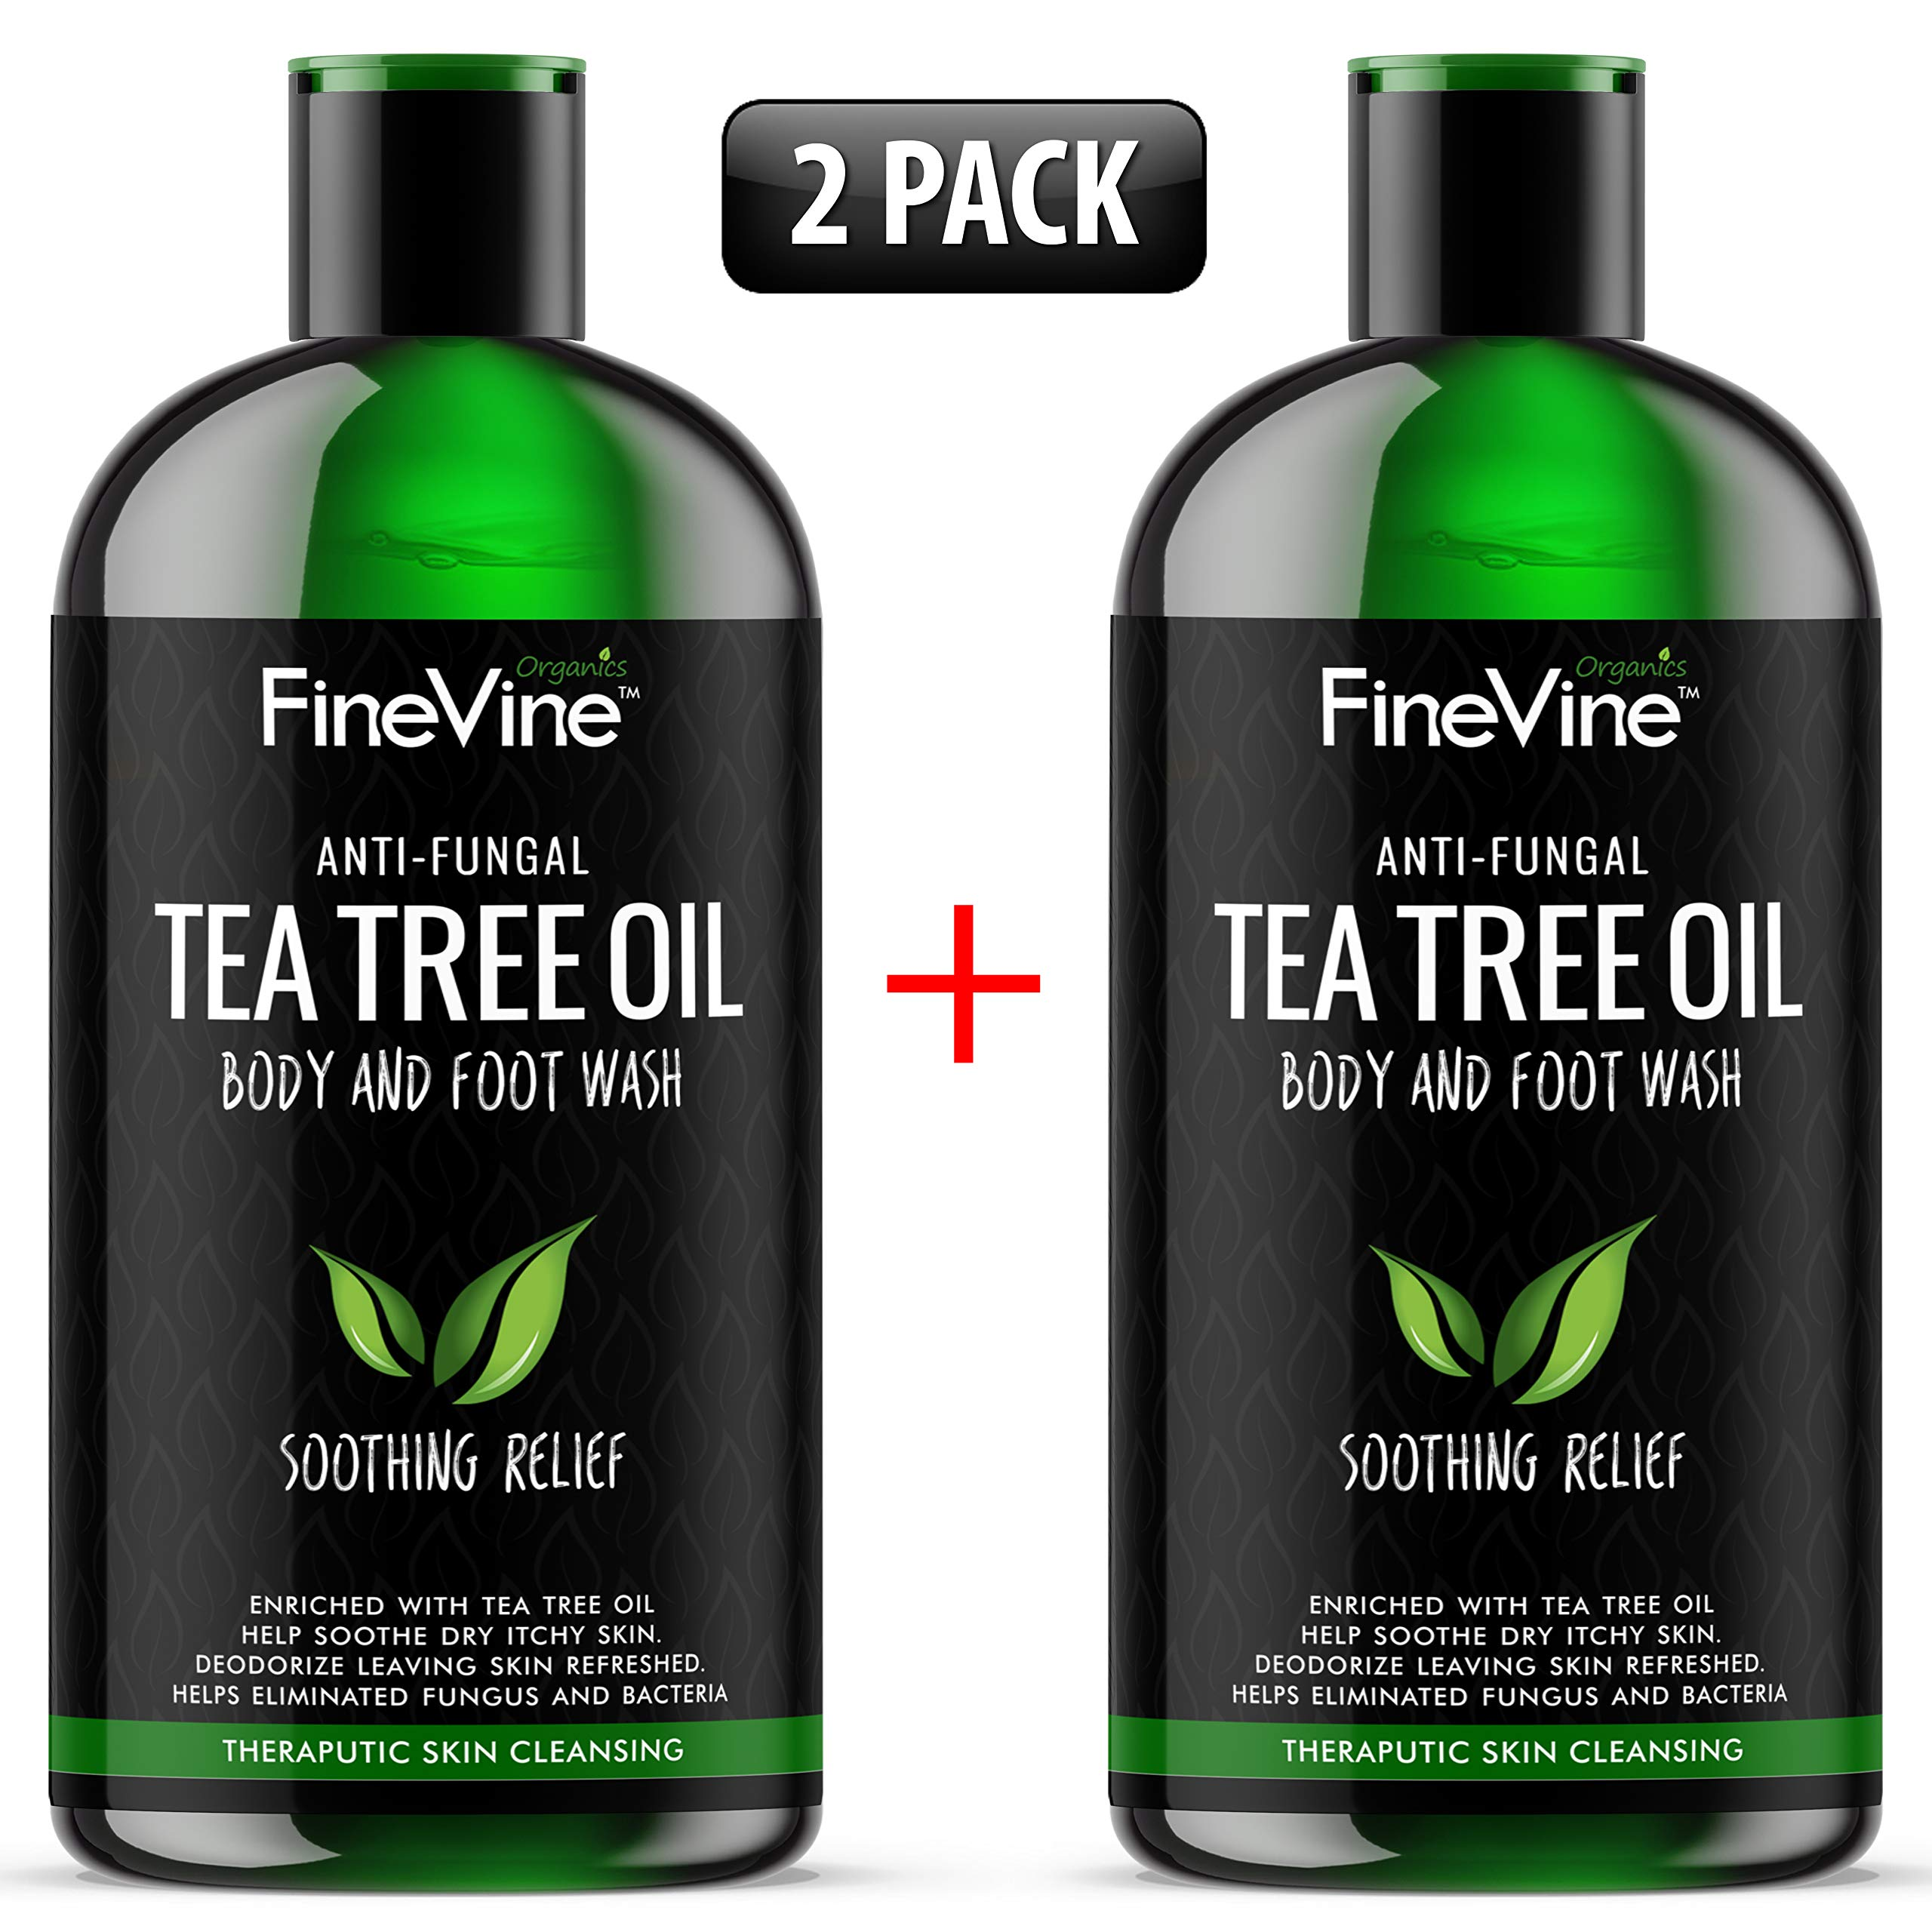 100% Natural Tea Tree Body Wash| Organic Tea Tree Oil Body Wash Made in USA| Cleansing Body Wash Fights off Jock Itch & Nail Fungus| Antifungal Body Wash Treats Athletes Foot, Ec-zema, Ring Worm, Odor by FineVine